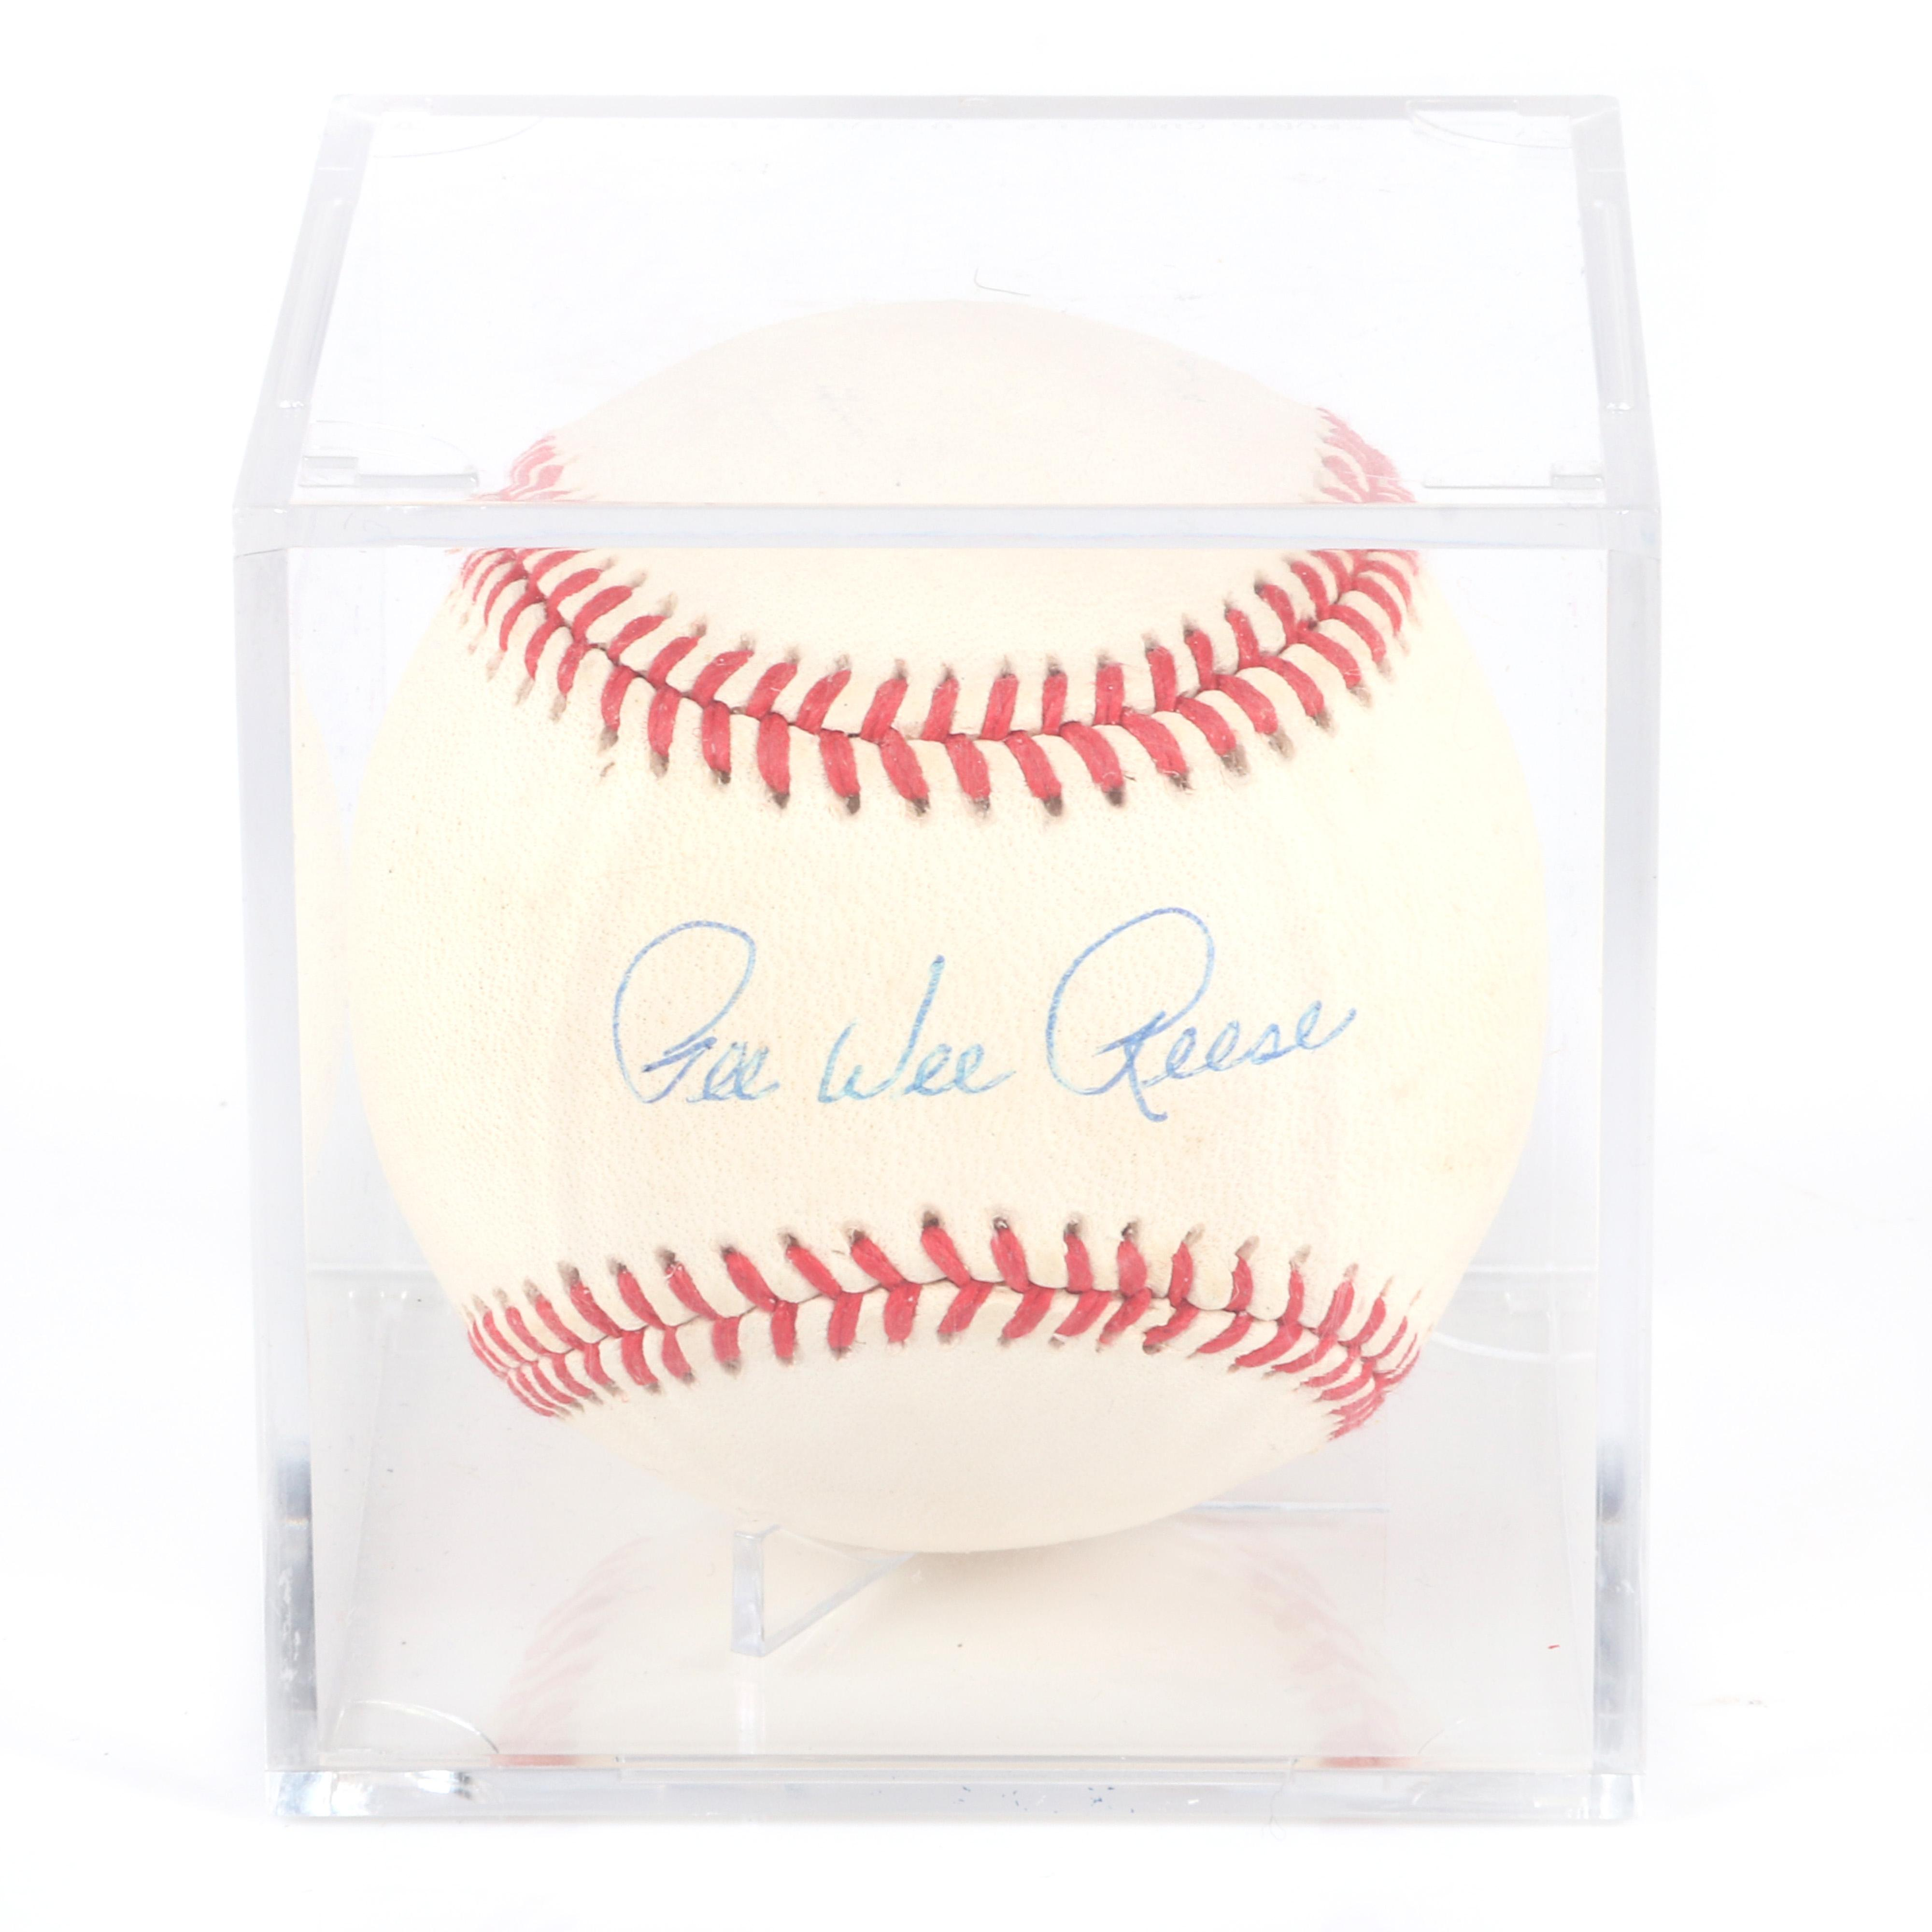 Pee Wee Reese Autographed Baseball